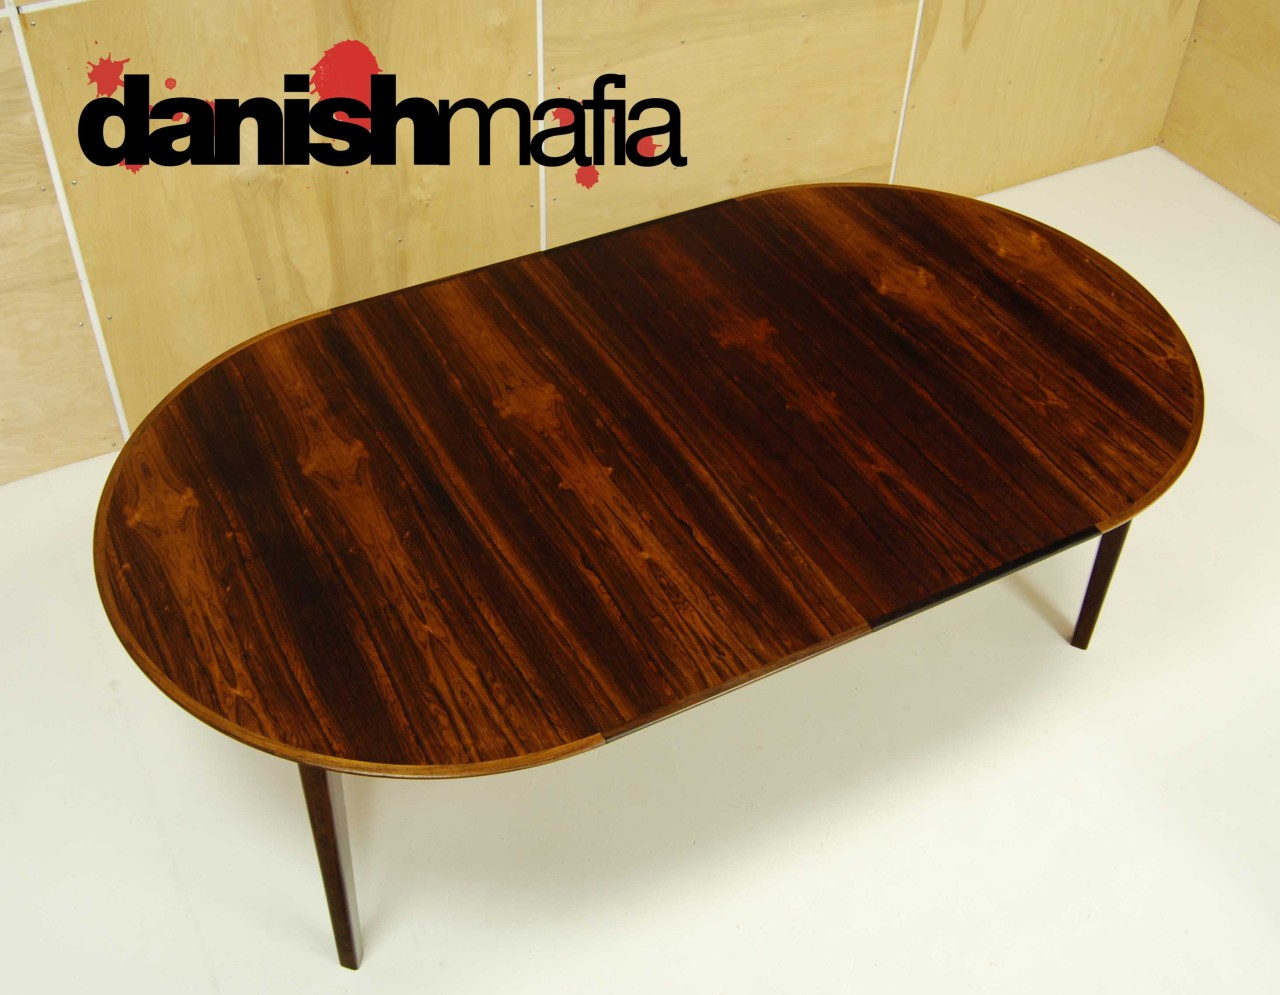 http://www.danishmafia.com/blog/wp-content/uploads/Mid-Century-Rosewood-Dining-Table-6.jpg